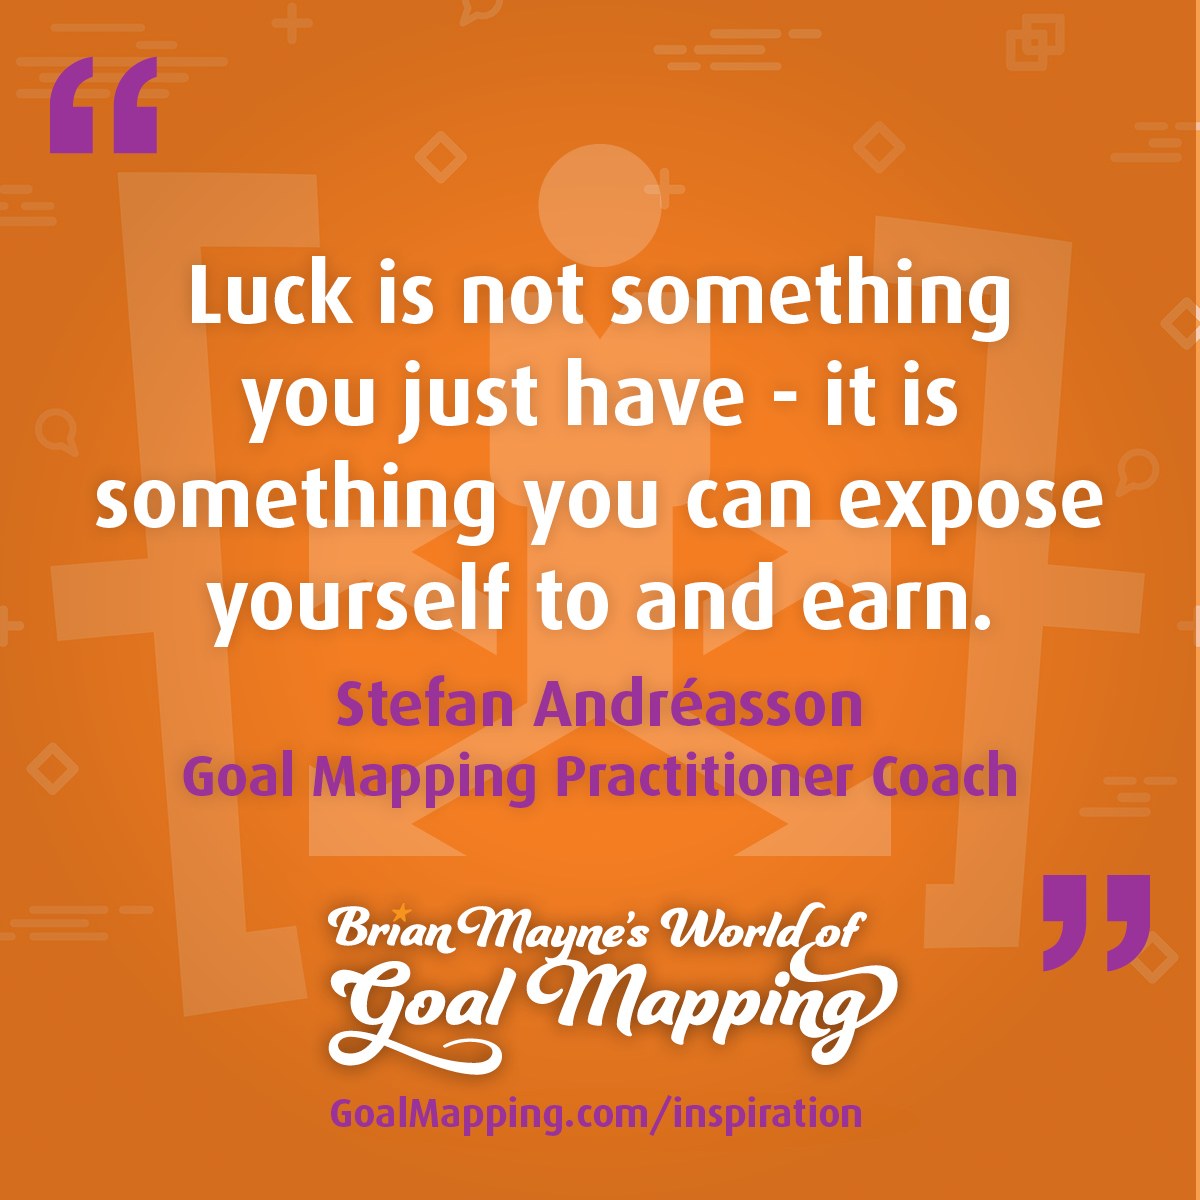 """""""Luck is not something you just have - it is something you can expose yourself to and earn."""" Stefan Andréasson Goal Mapping Practitioner Coach"""